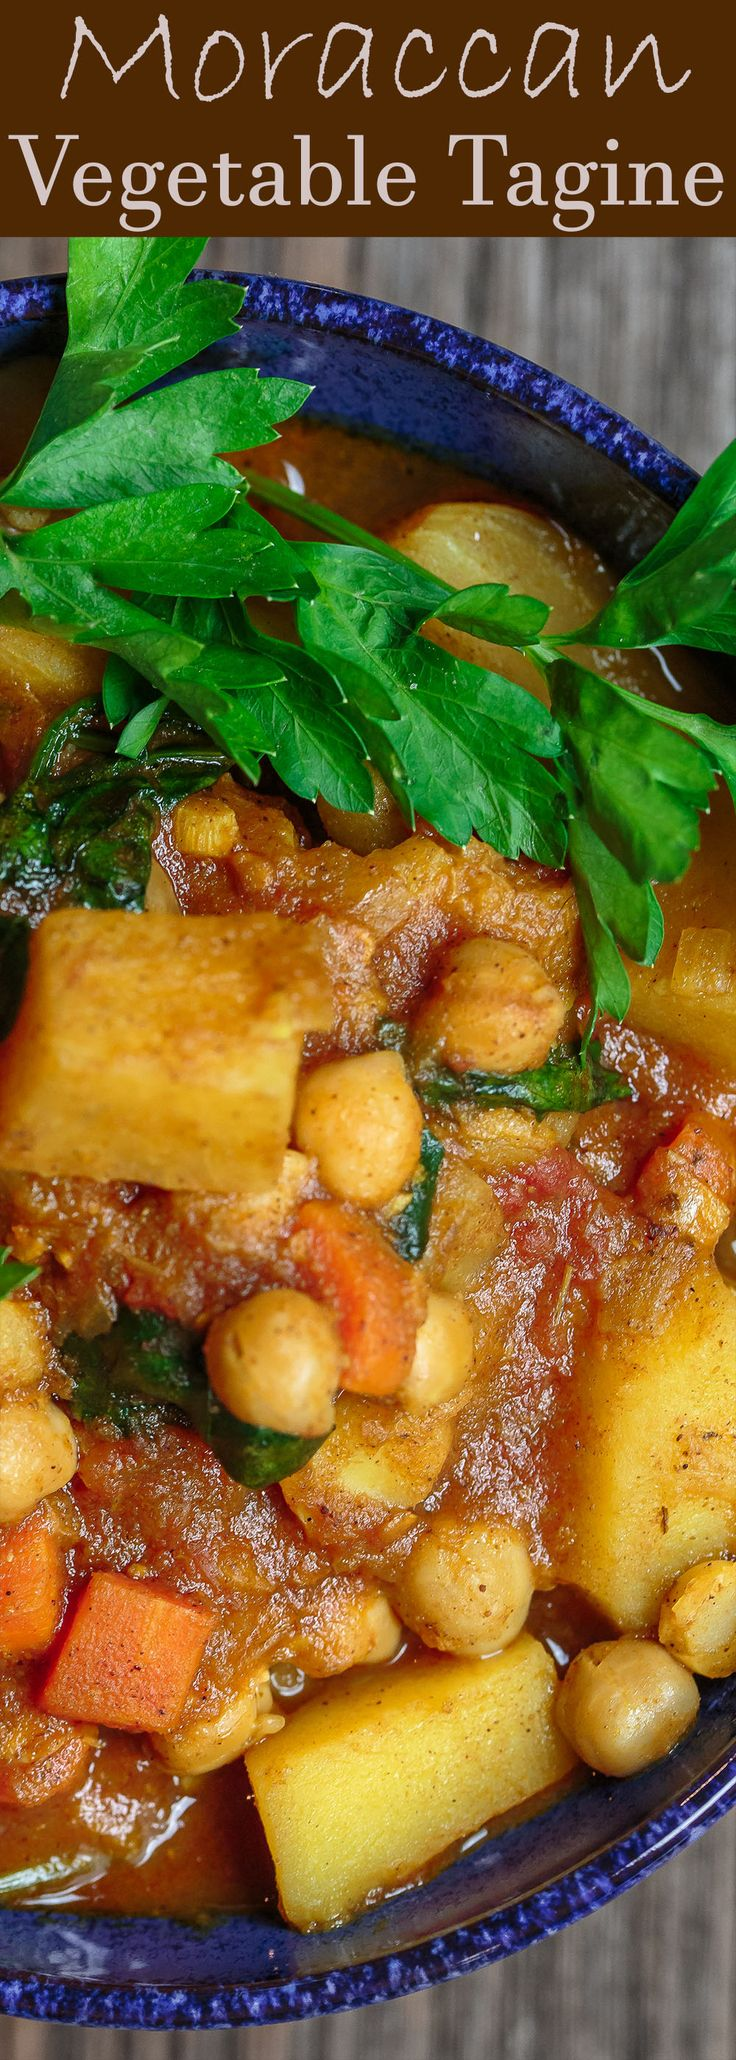 Moroccan Vegetable Tagine Recipe | The Mediterranean Dish. A simple and succulent vegetable stew, flavored Morrocan-style with warm spices, aromatics, and dried apricots. The best vegetable tagine or vegetable stew you'll have. See it on TheMediterraneanD http://eatdojo.com/easy-healthy-recipes-meals-breakfast-lunch-dinner/